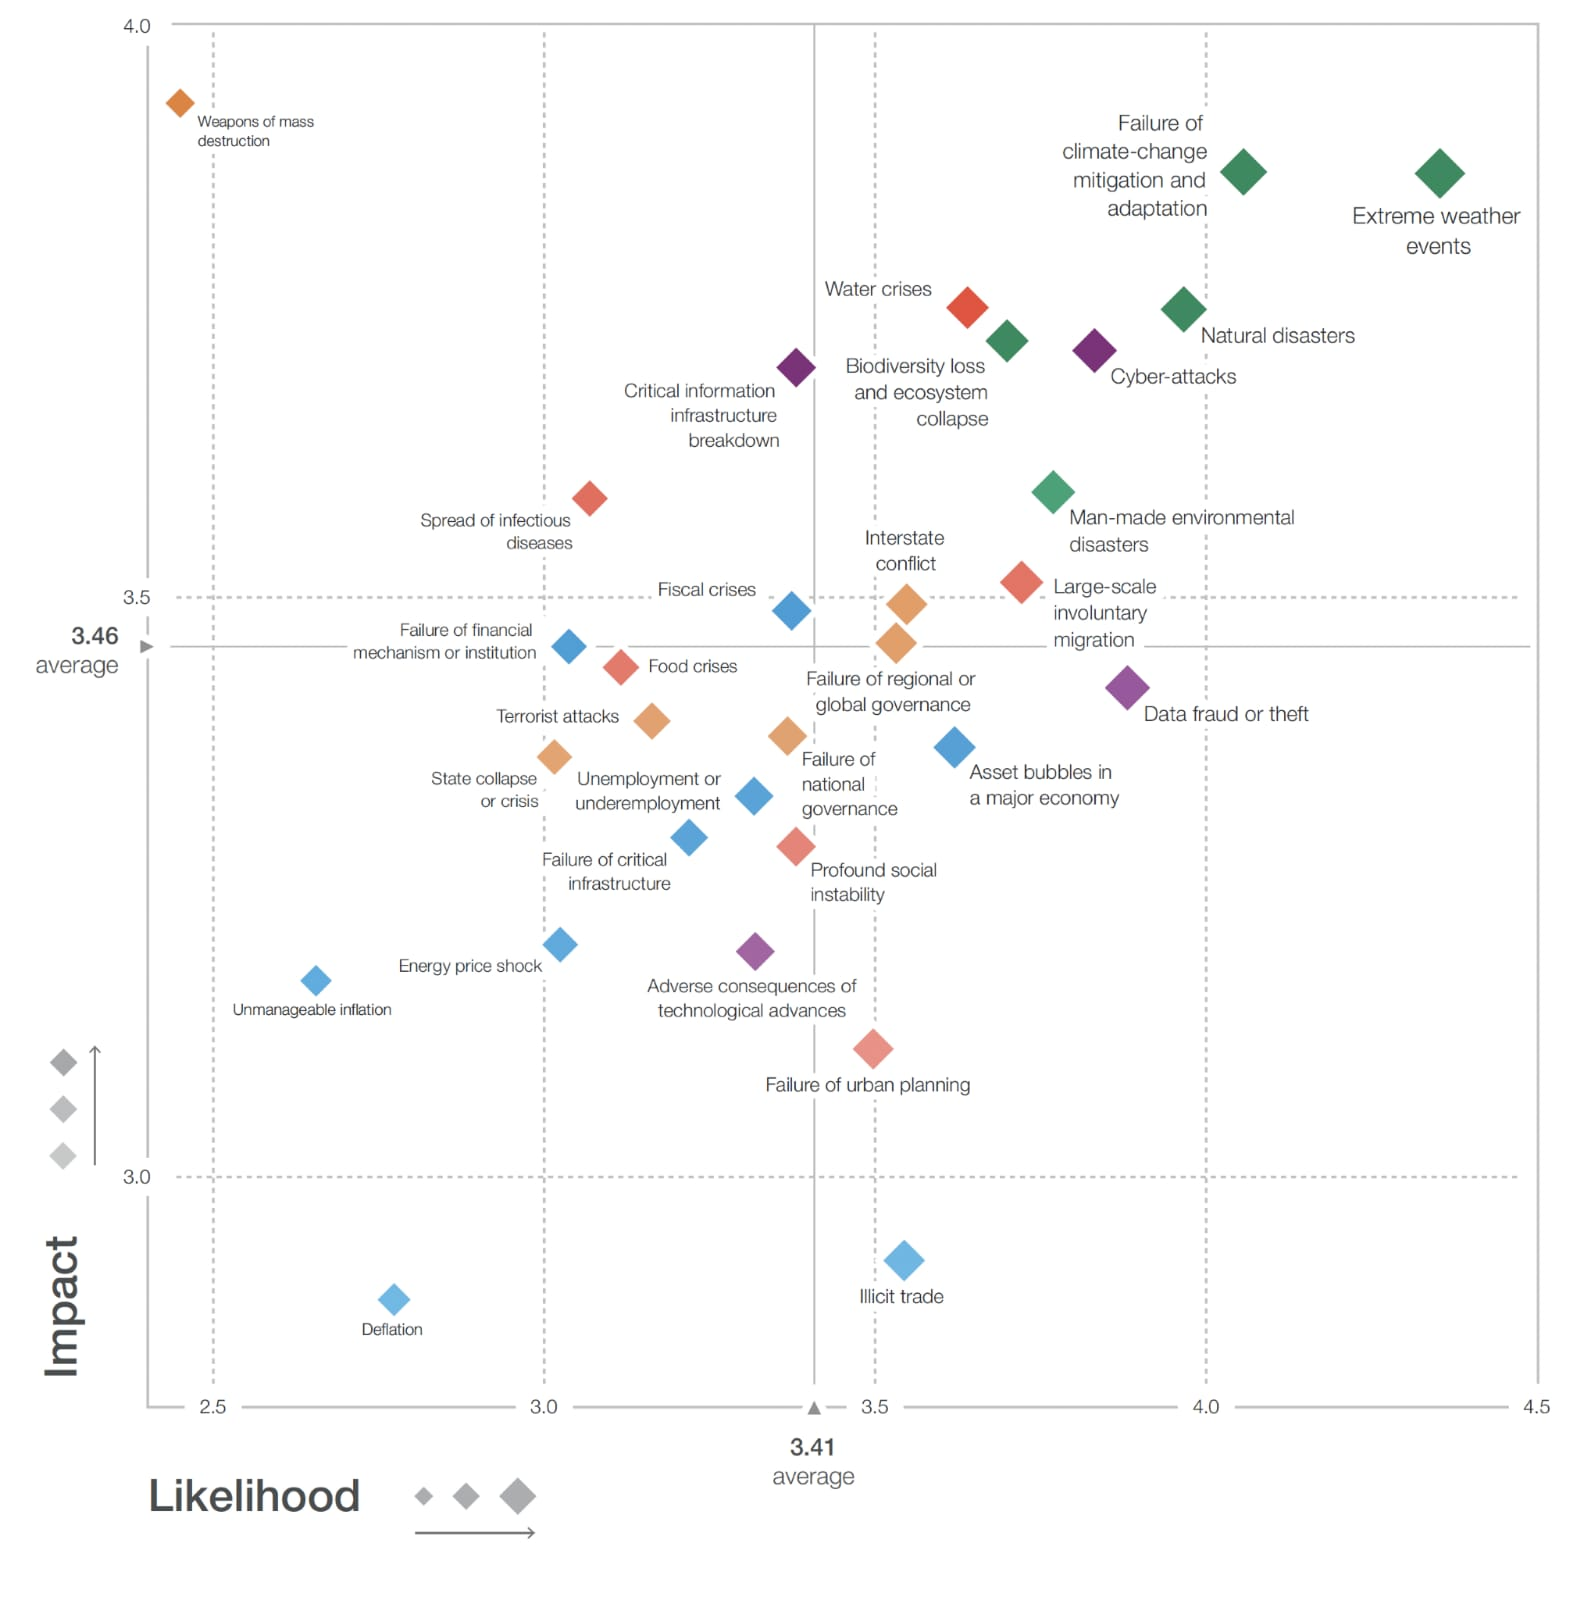 Average survey responses from experts on the likelihood and impact of particular global risks, on a scale from 1 to 5. Environmental risks are shown in green